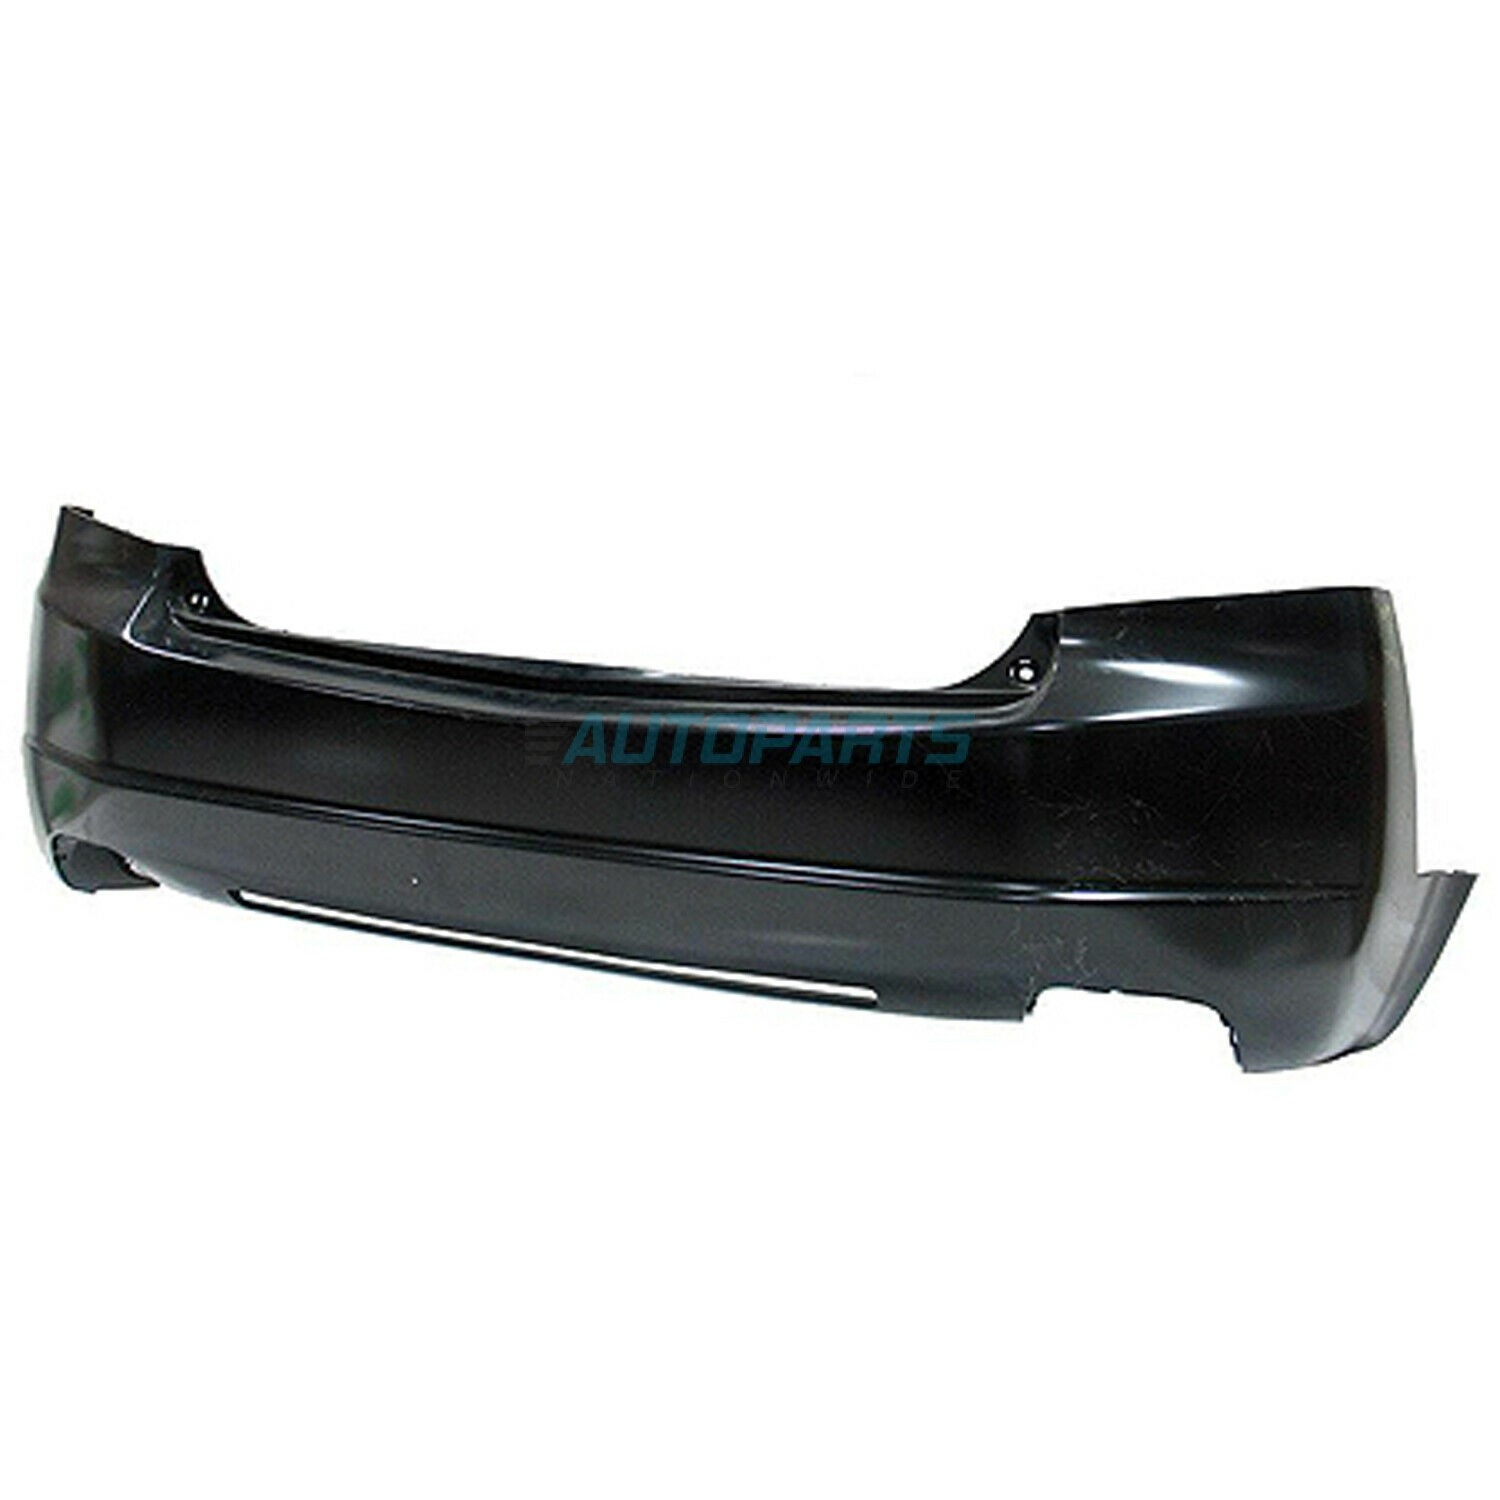 NEW REAR BUMPER COVER PRIME FITS 2007-2008 ACURA TL